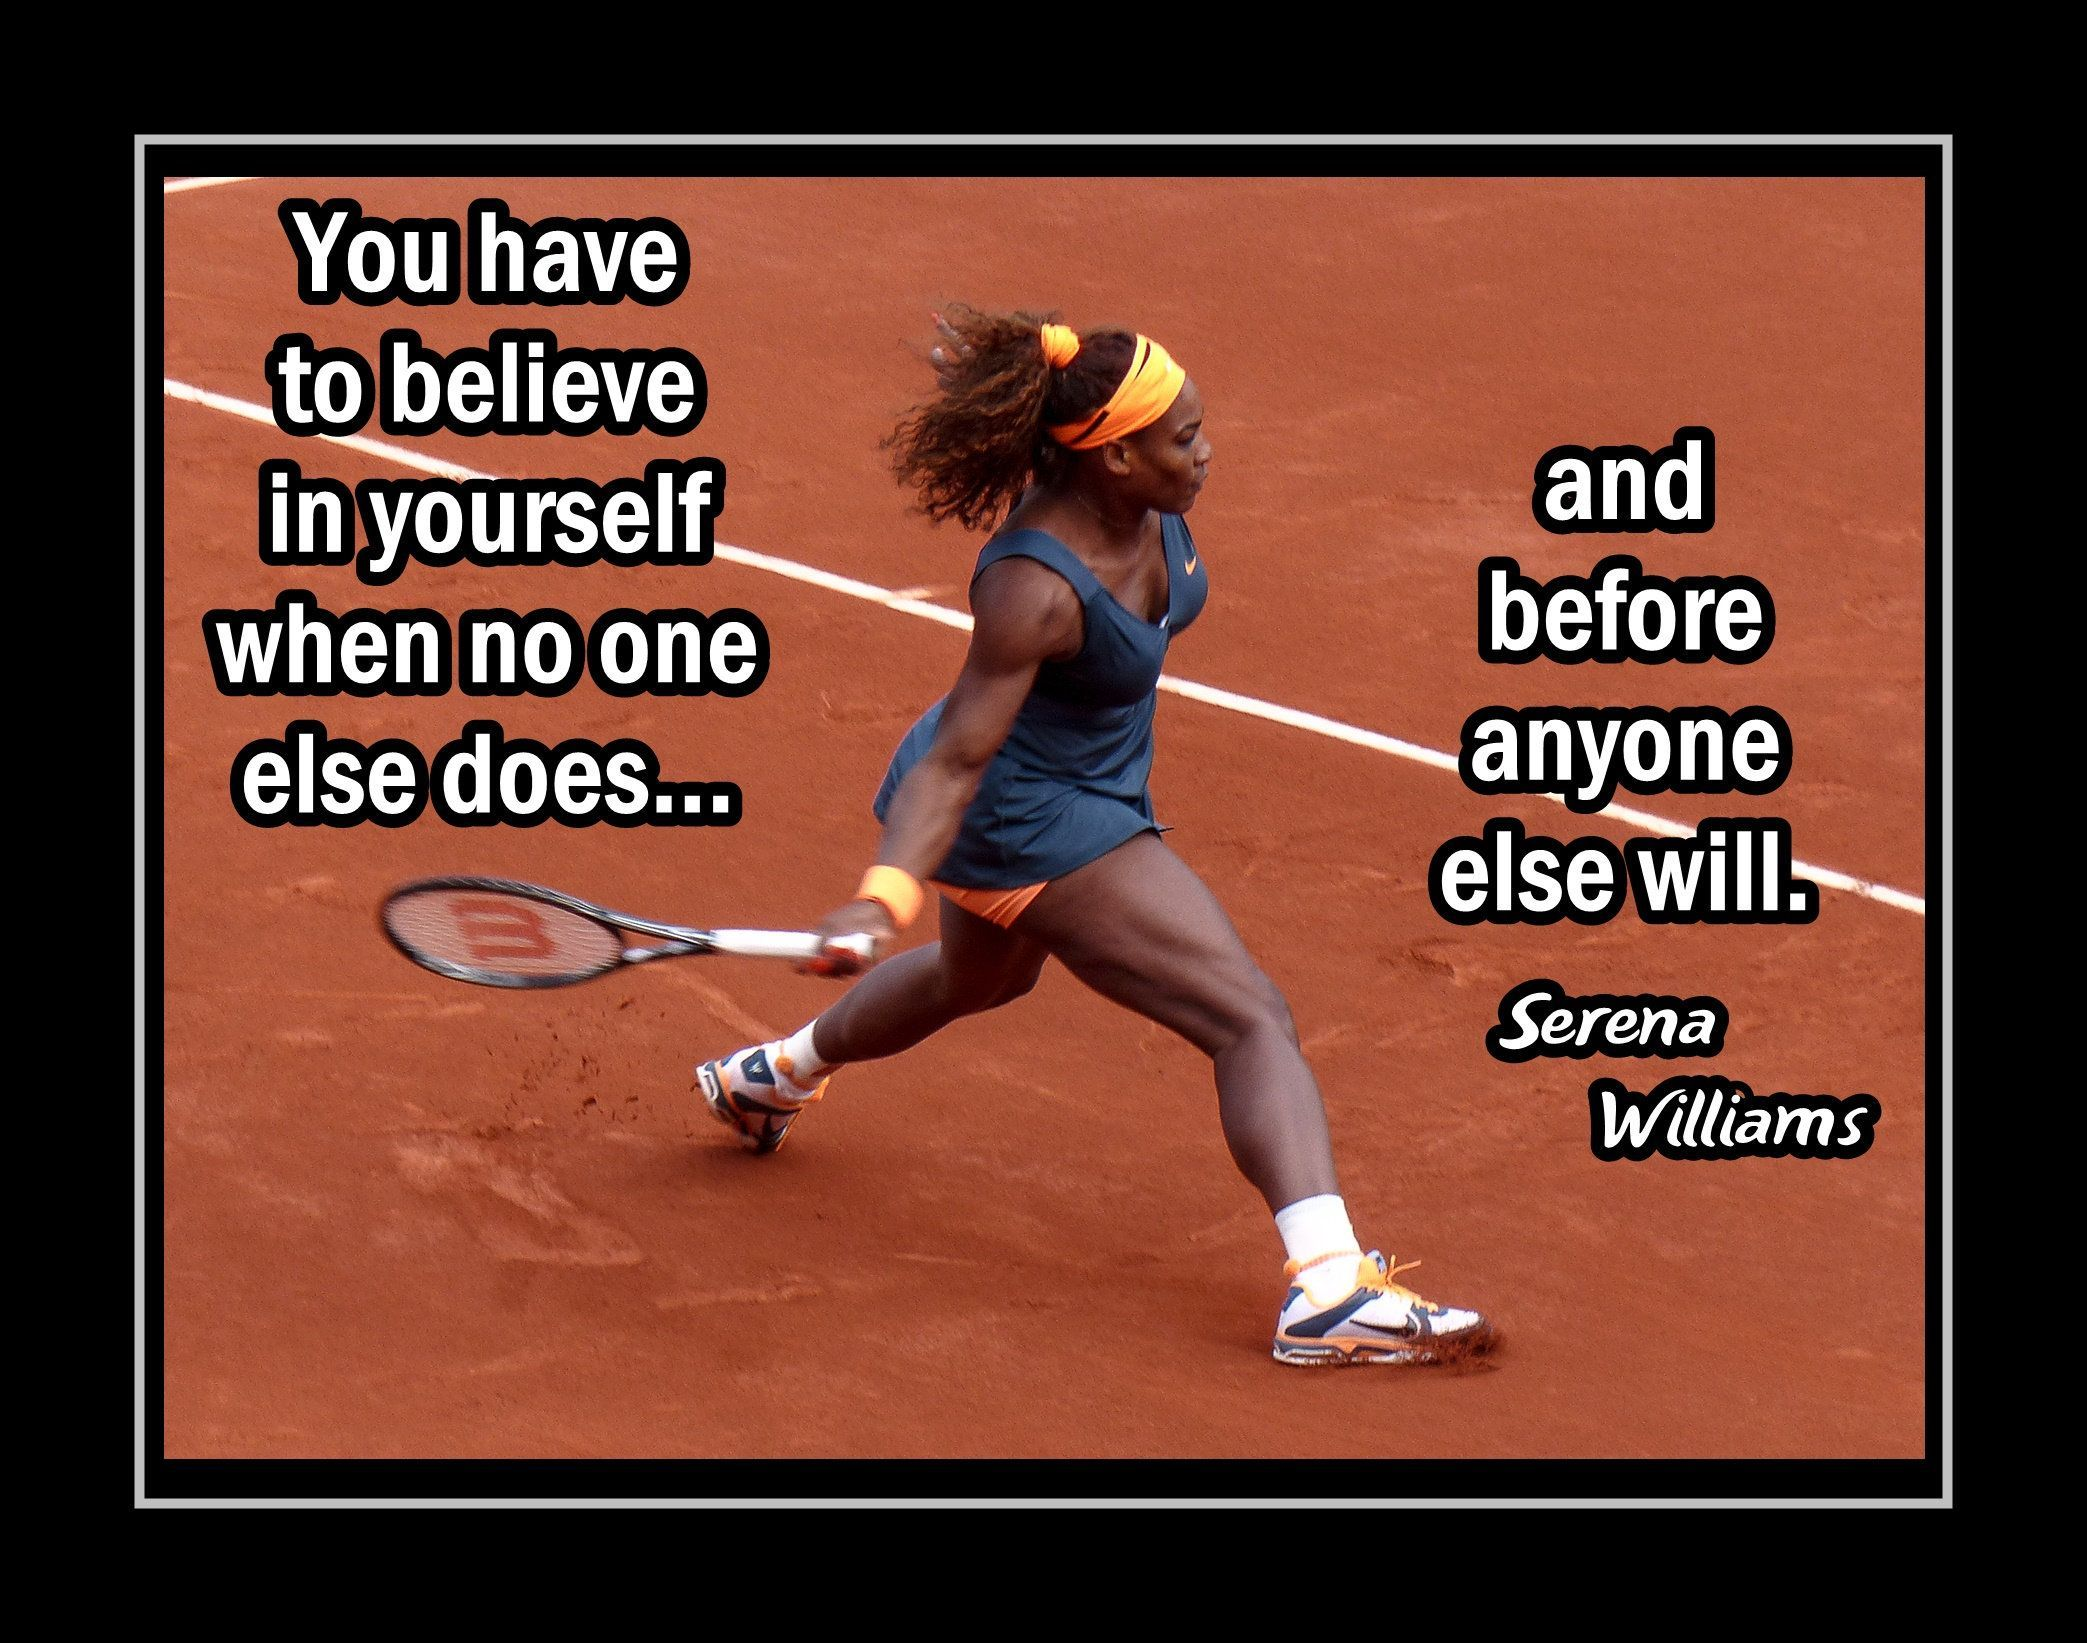 Inspirational Tennis Quote Wall Art Daughter Best Friend Birthday Gift Serena Williams Motivati Inspirational Tennis Quotes Tennis Quotes Tennis Quotes Funny